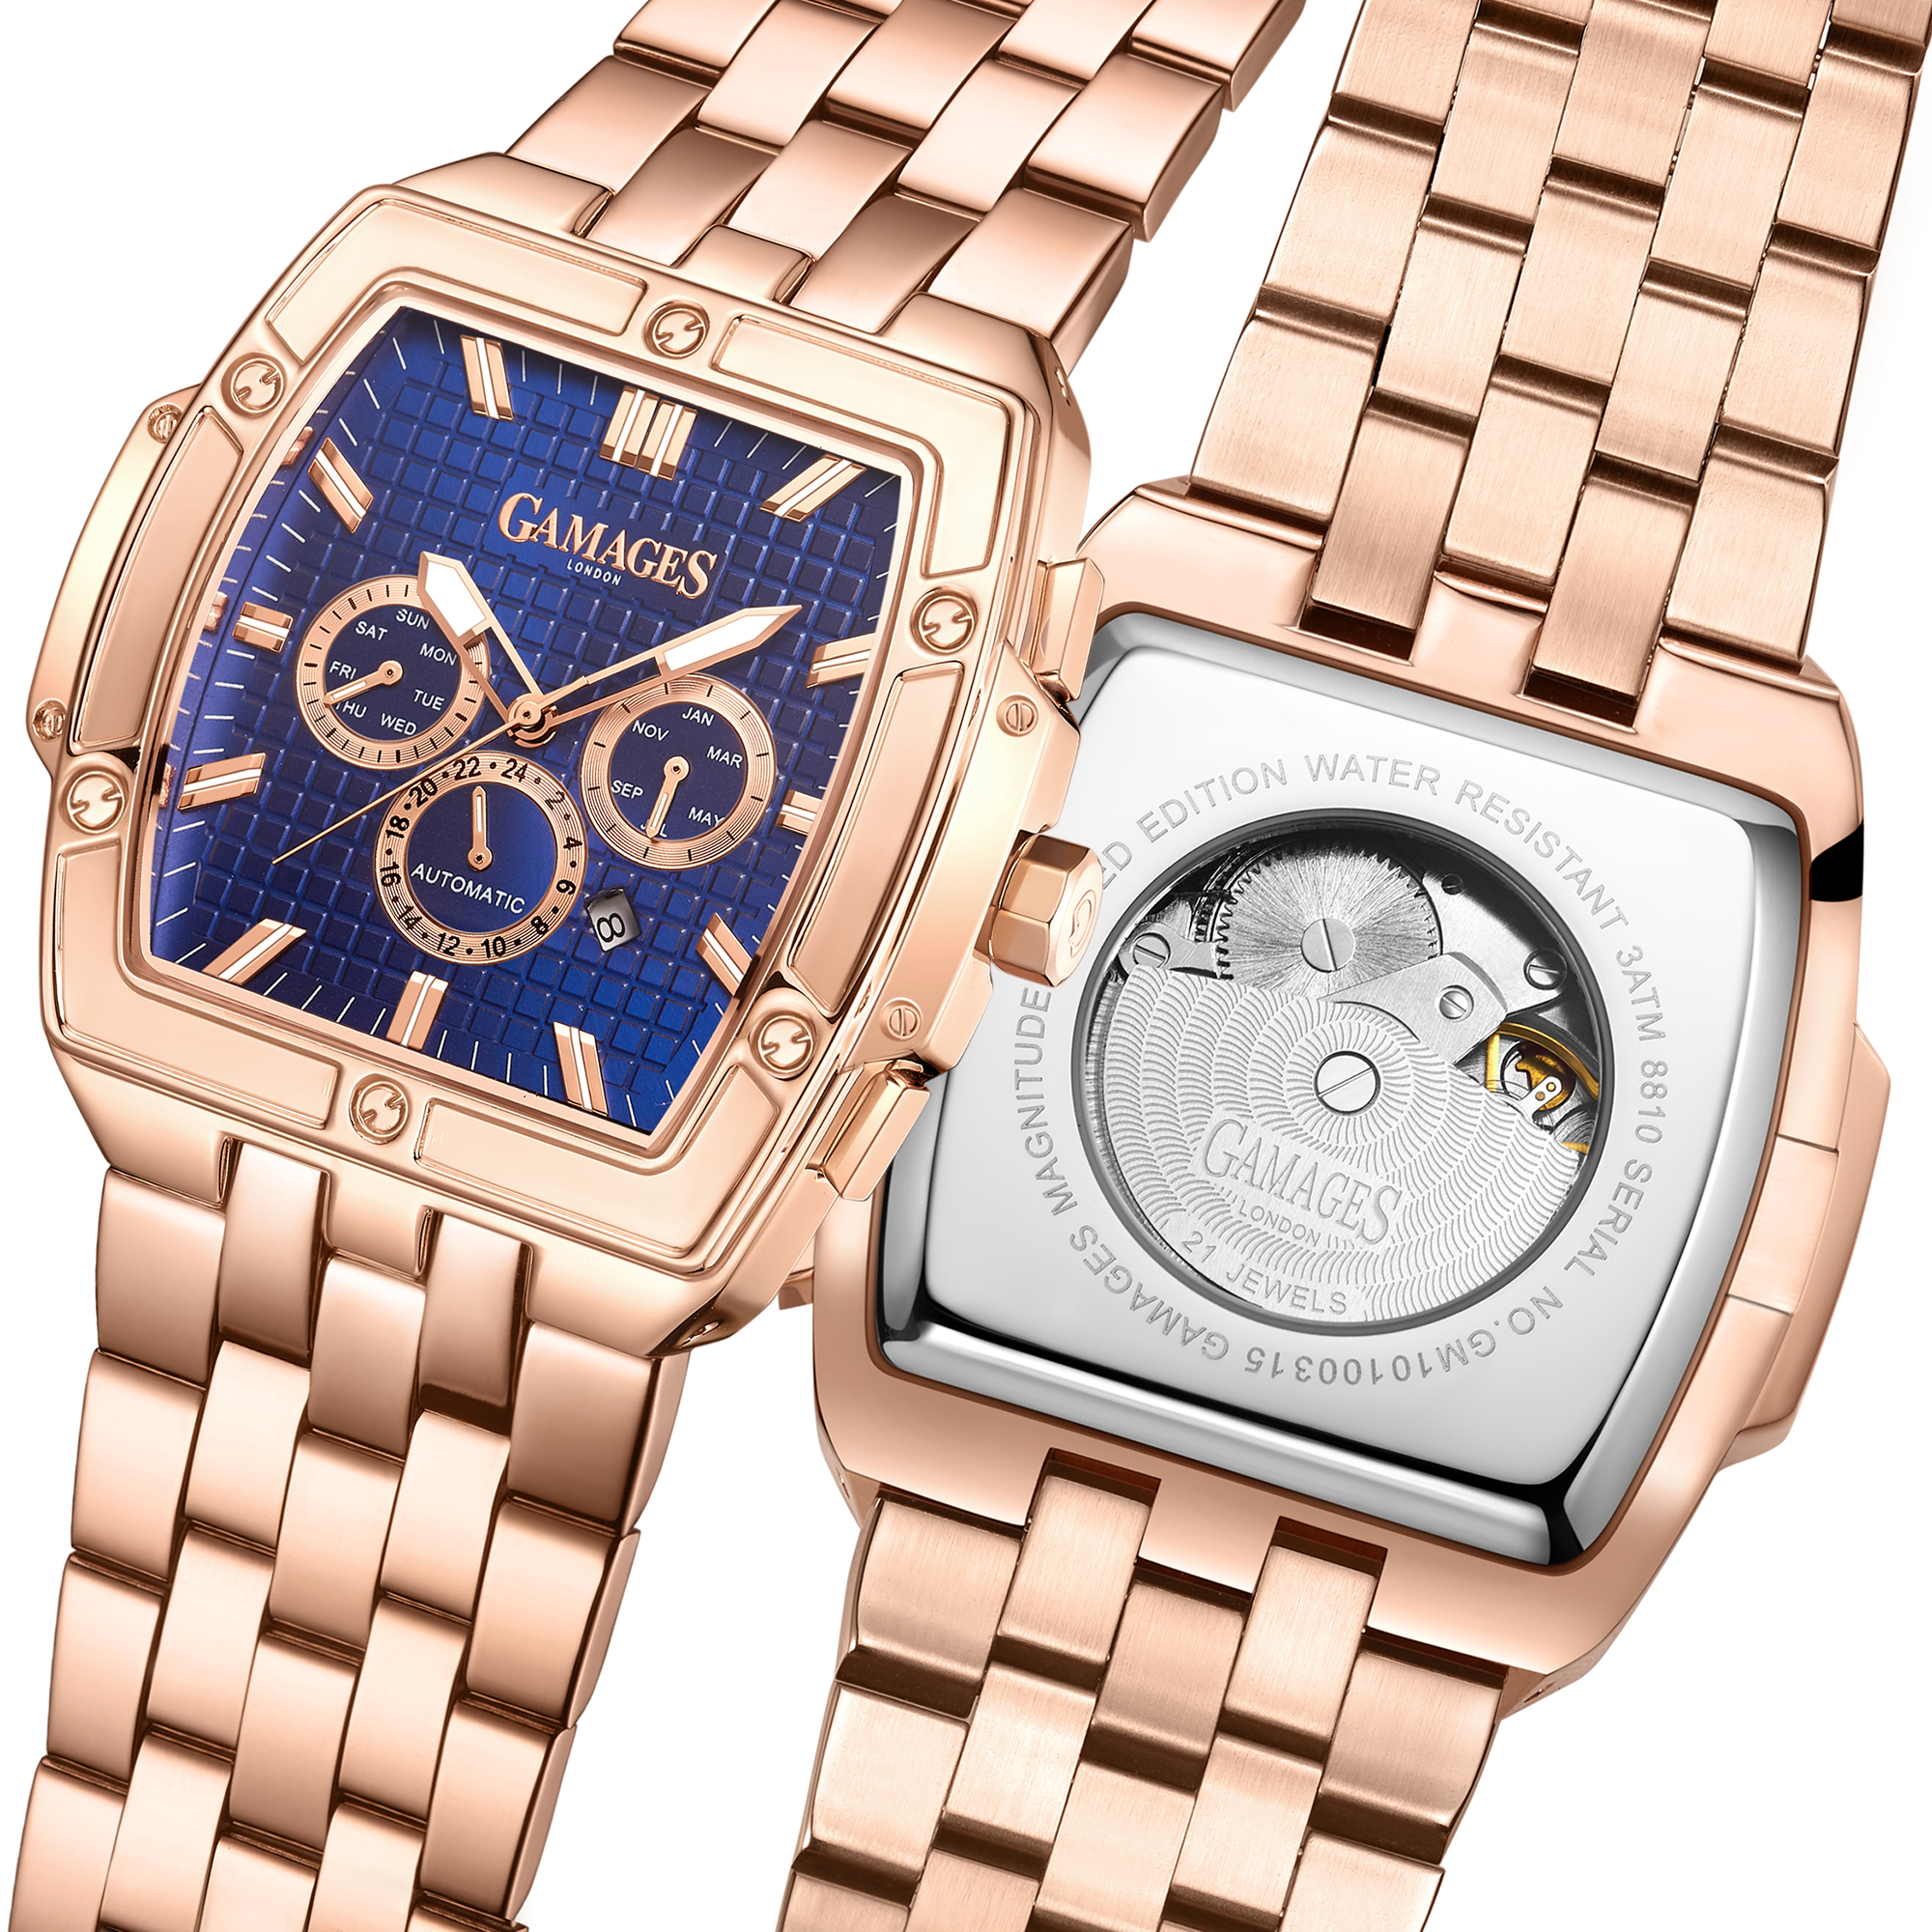 Limited Edition Hand Assembled GAMAGES Magnitude Automatic Rose – 5 Year Warranty & Free Delivery - Image 5 of 5